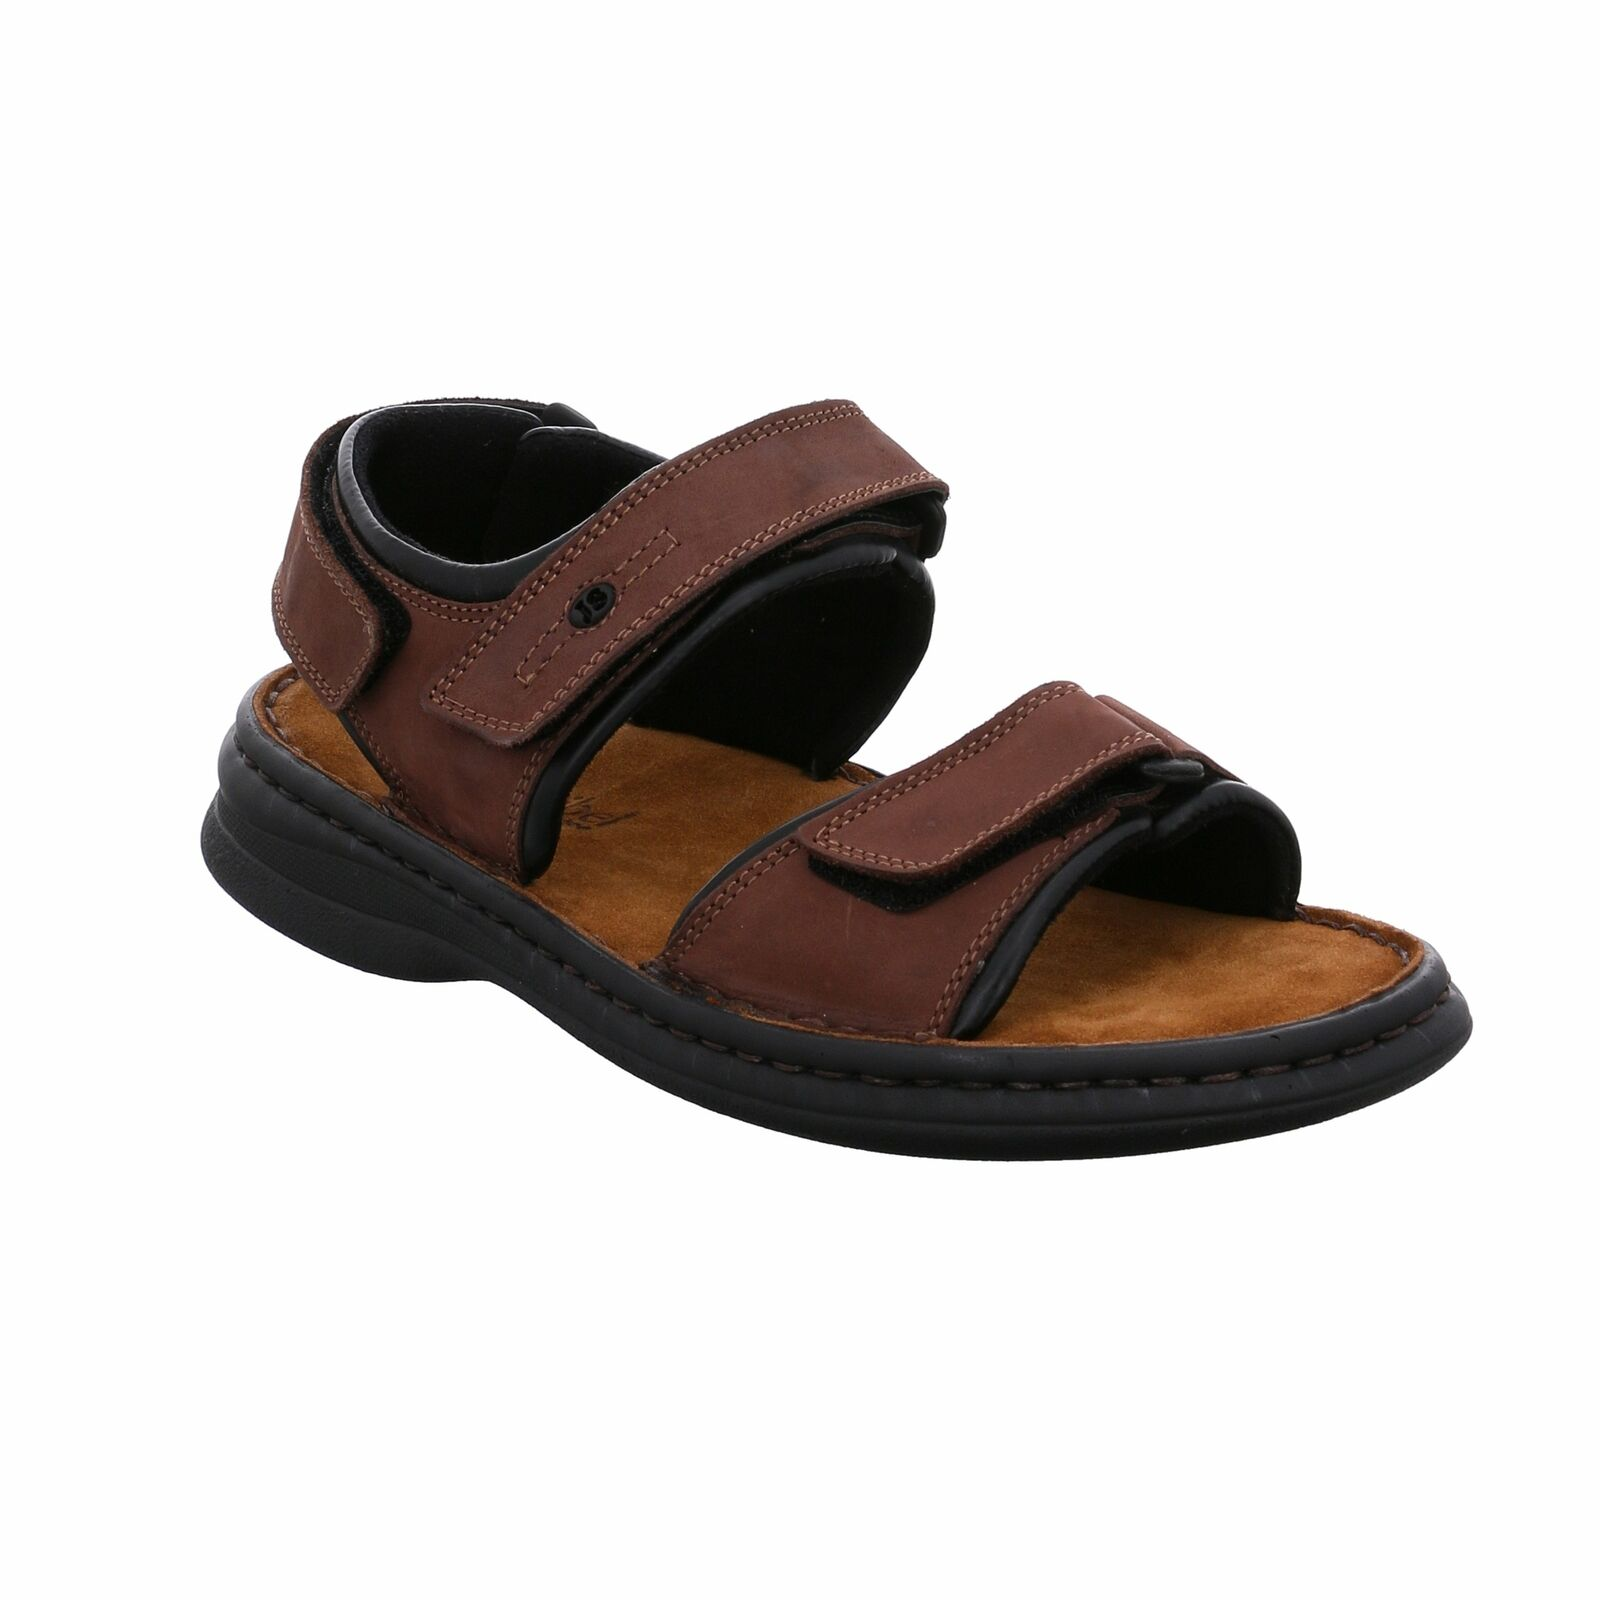 Josef Seibel Rafe 11 marrón Leather Mens Open-toe Walking Sandals